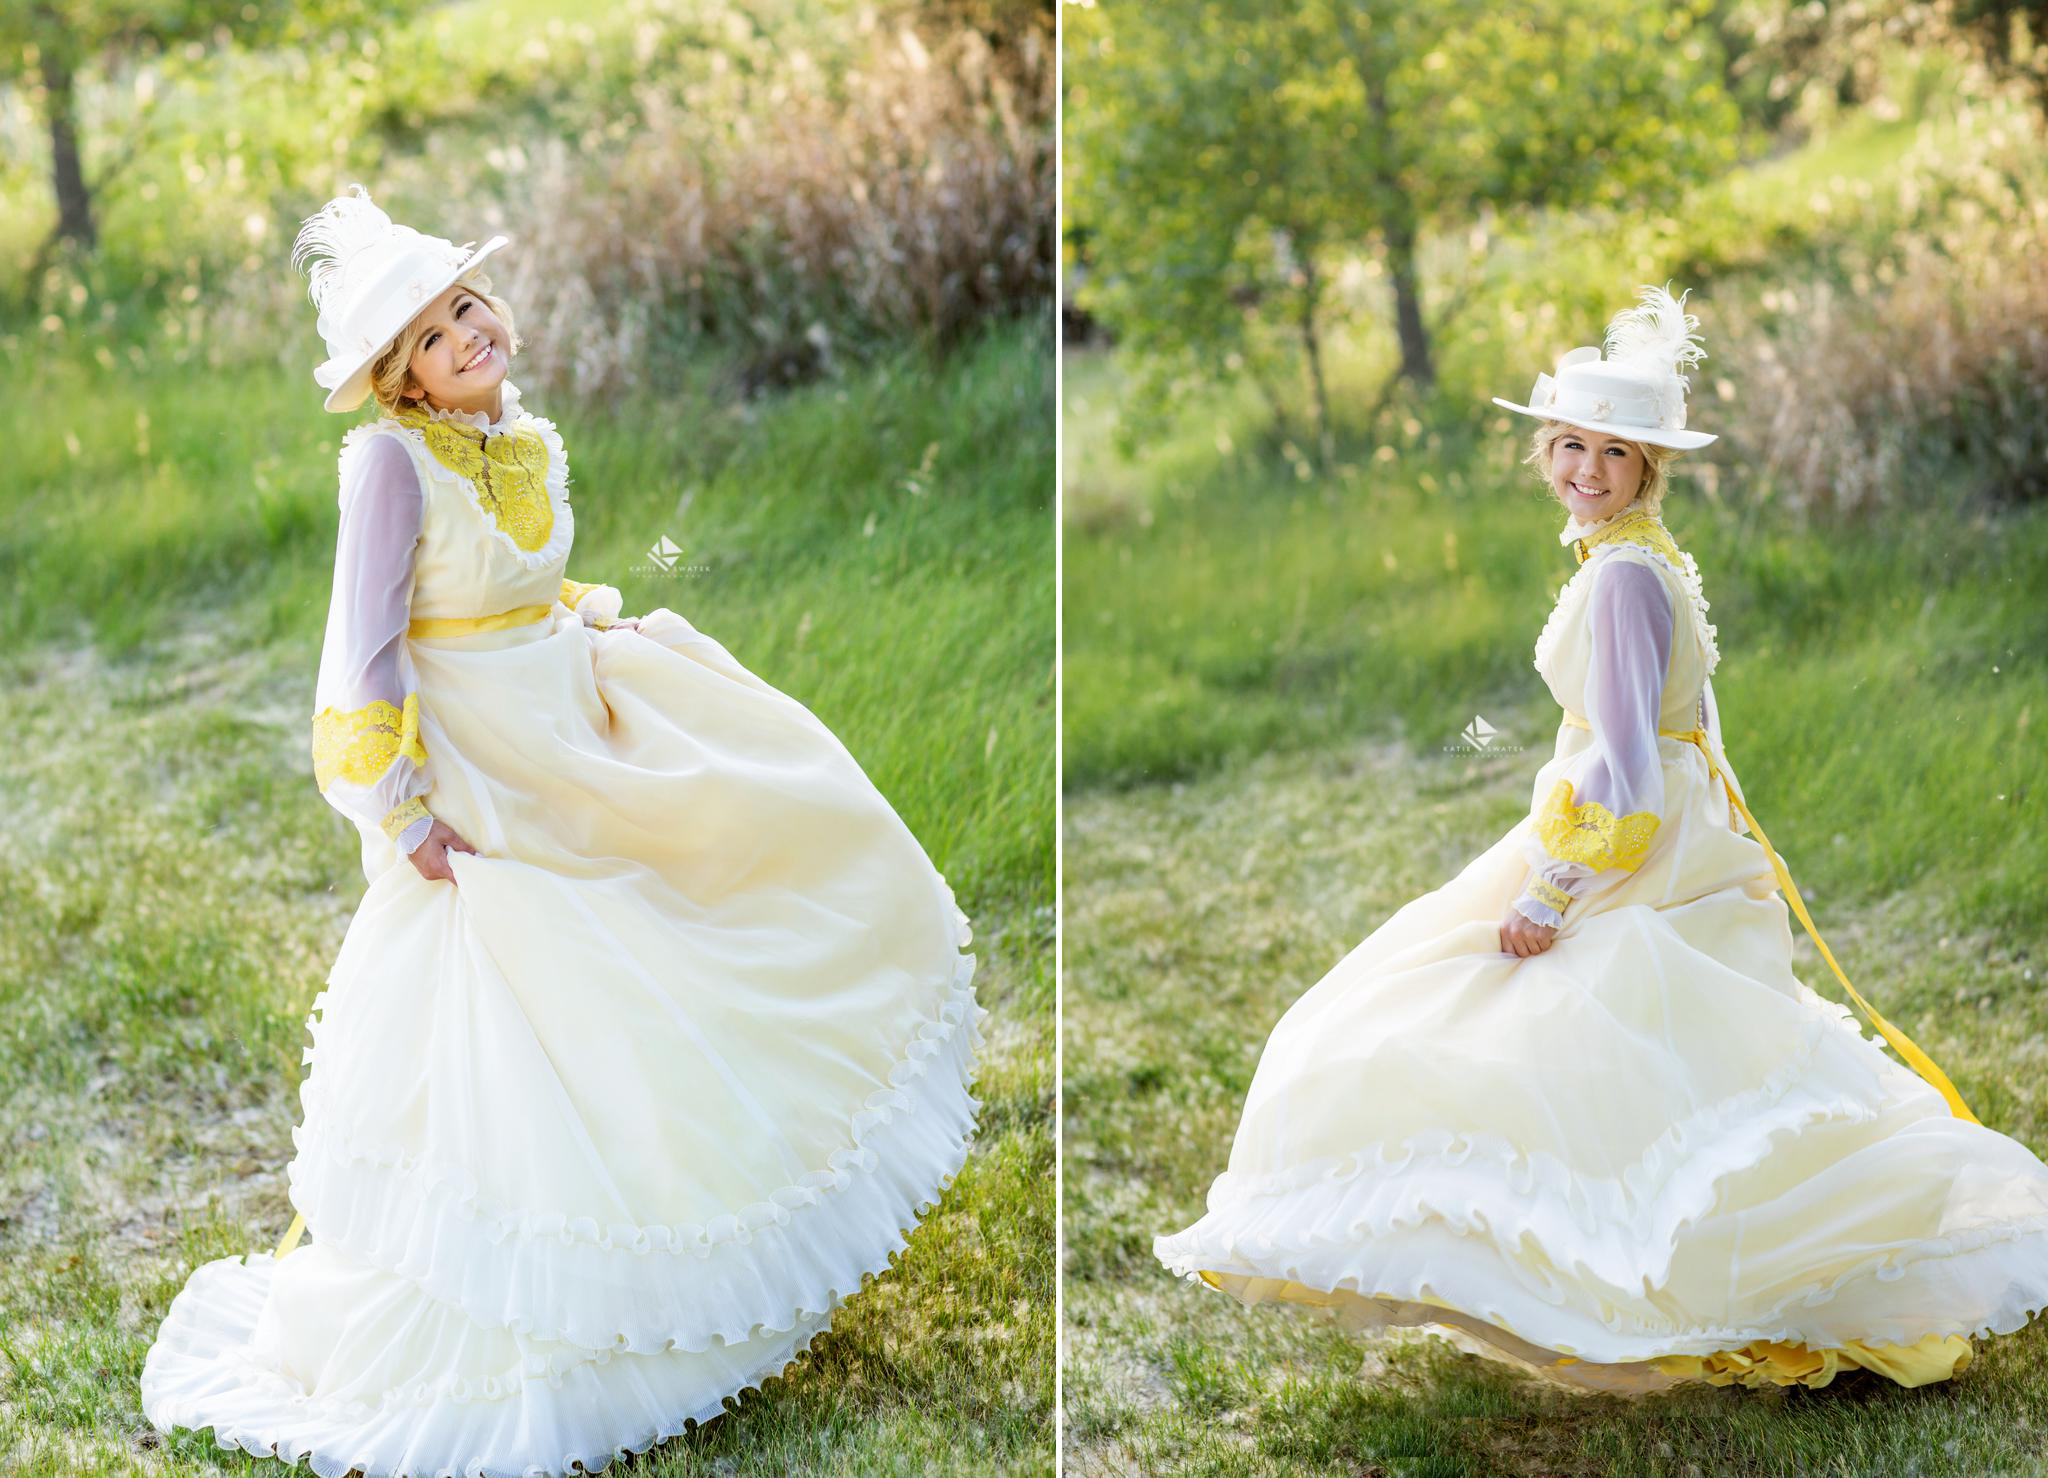 blonde senior girl in a gone with the wind costume dressed up for senior pictures in a grassy area